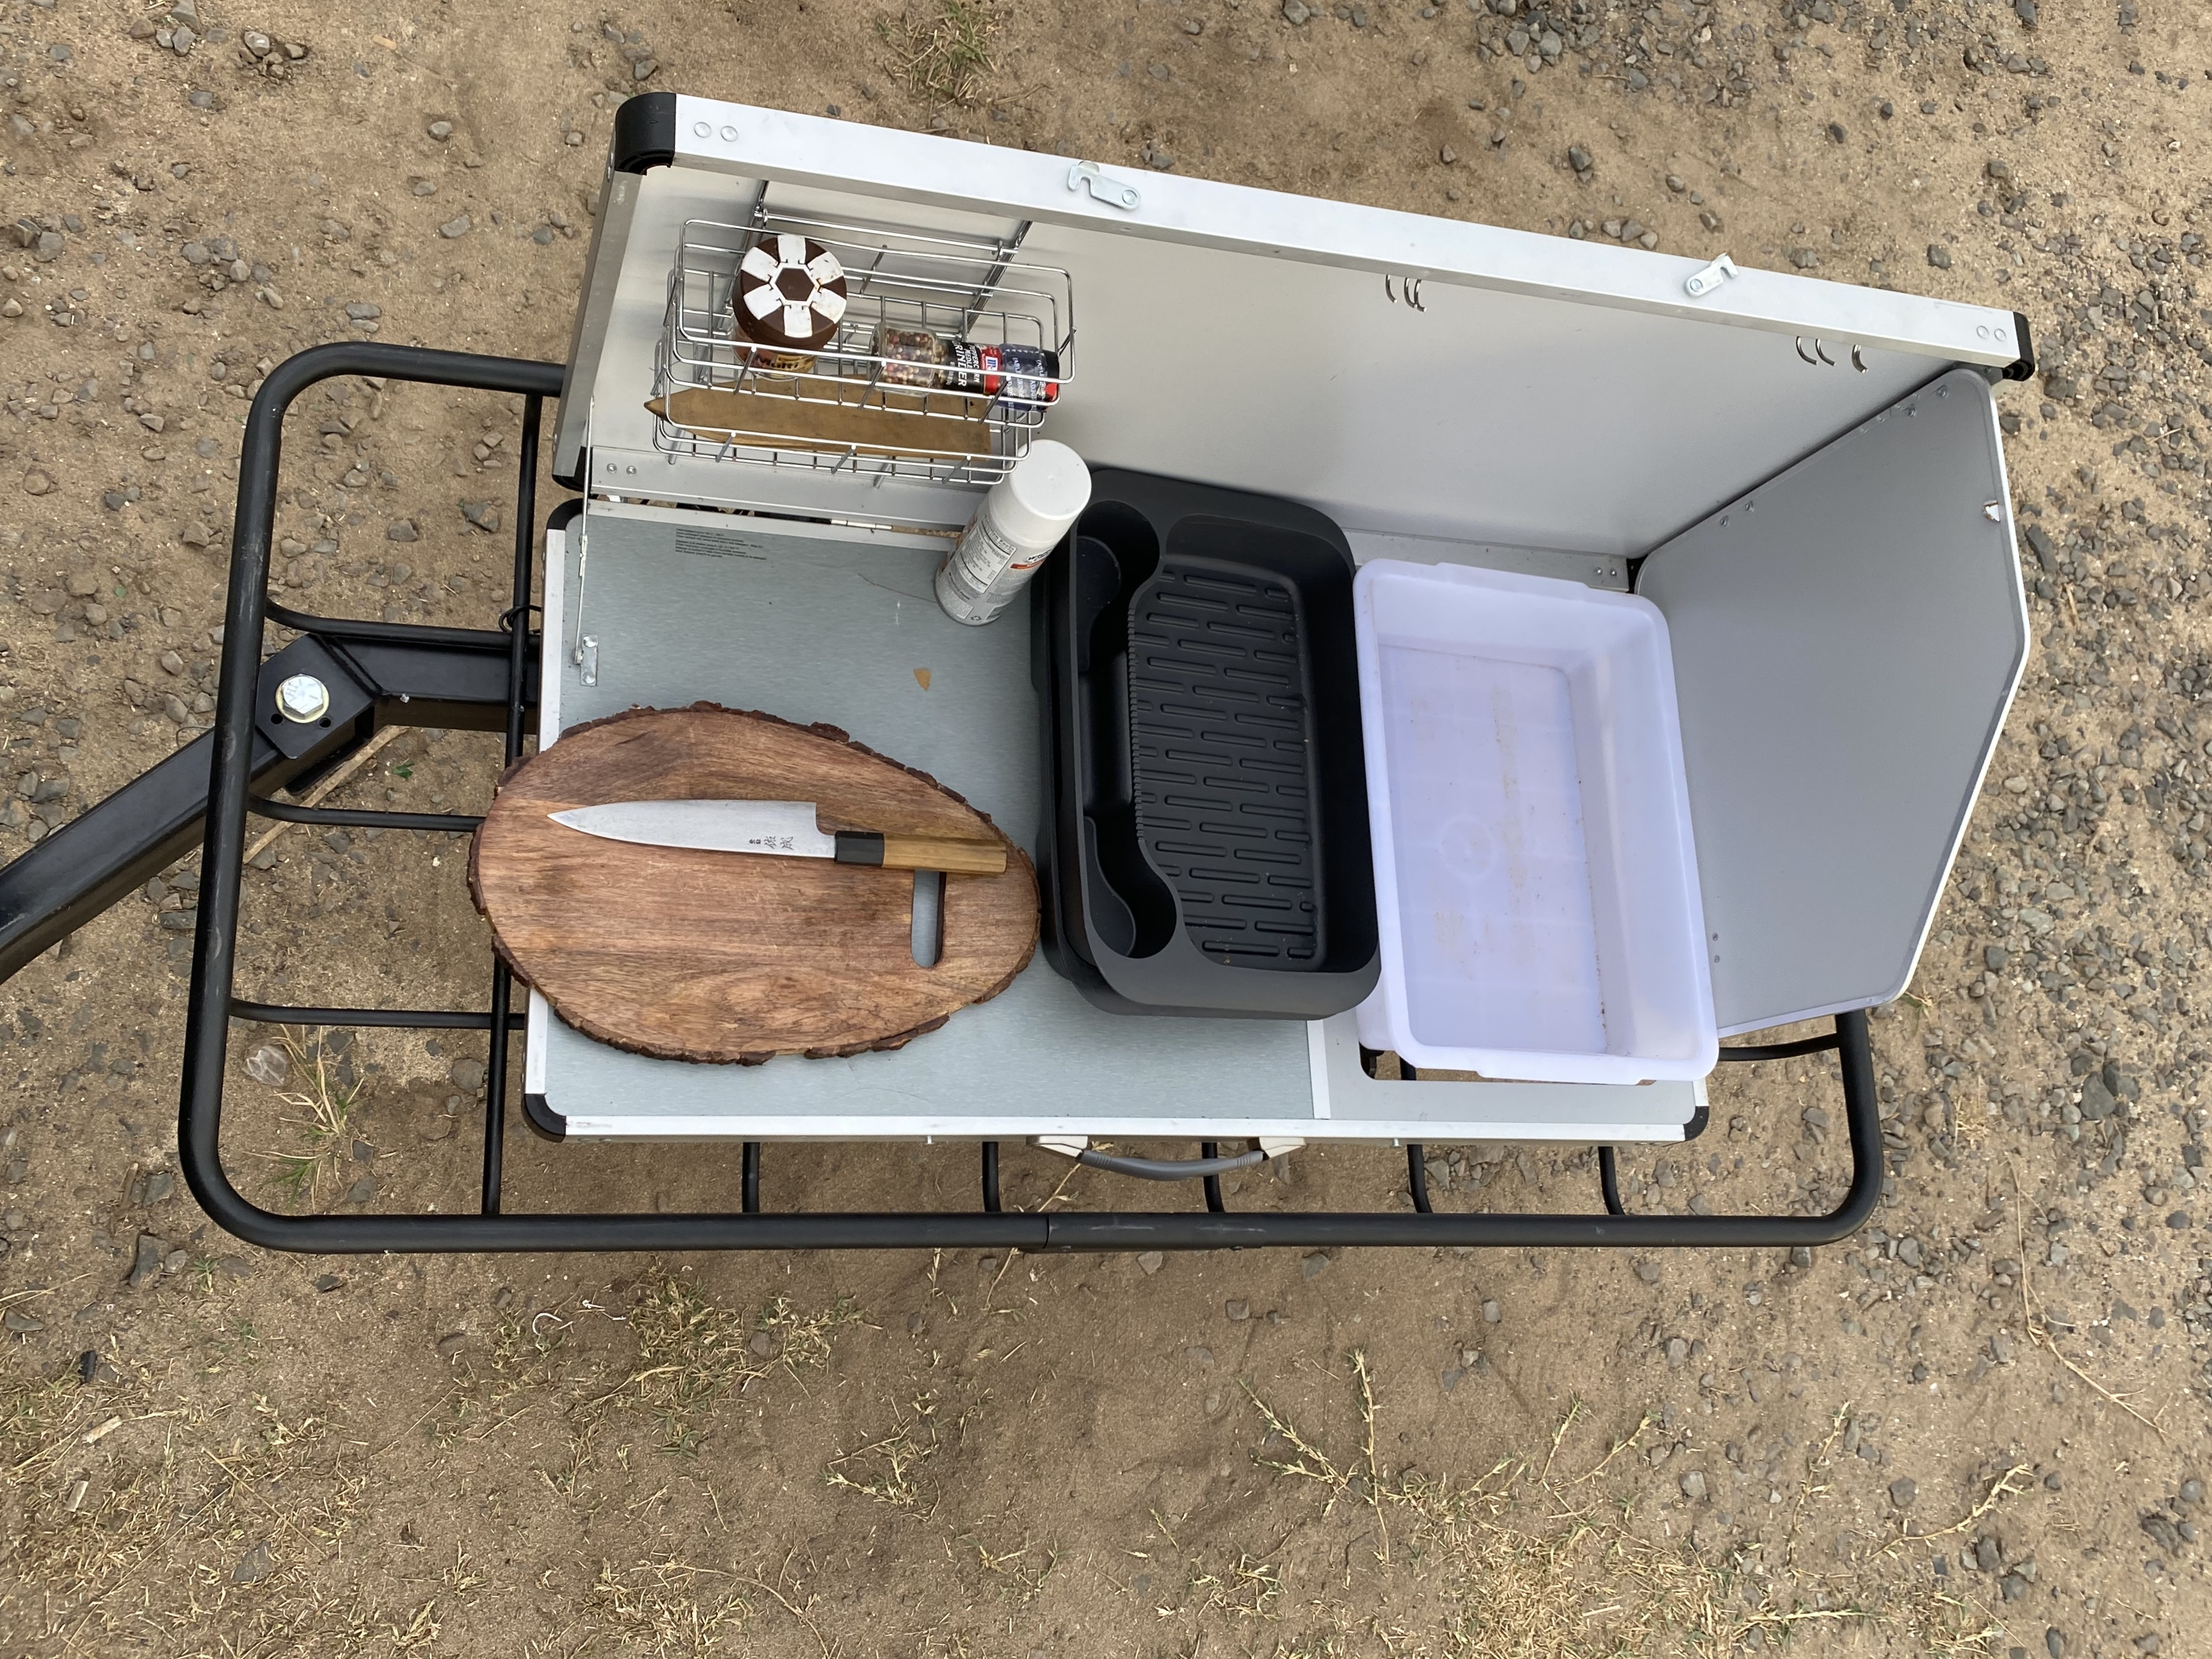 Convenient setup for cooking. Jeep Gladiator 2020